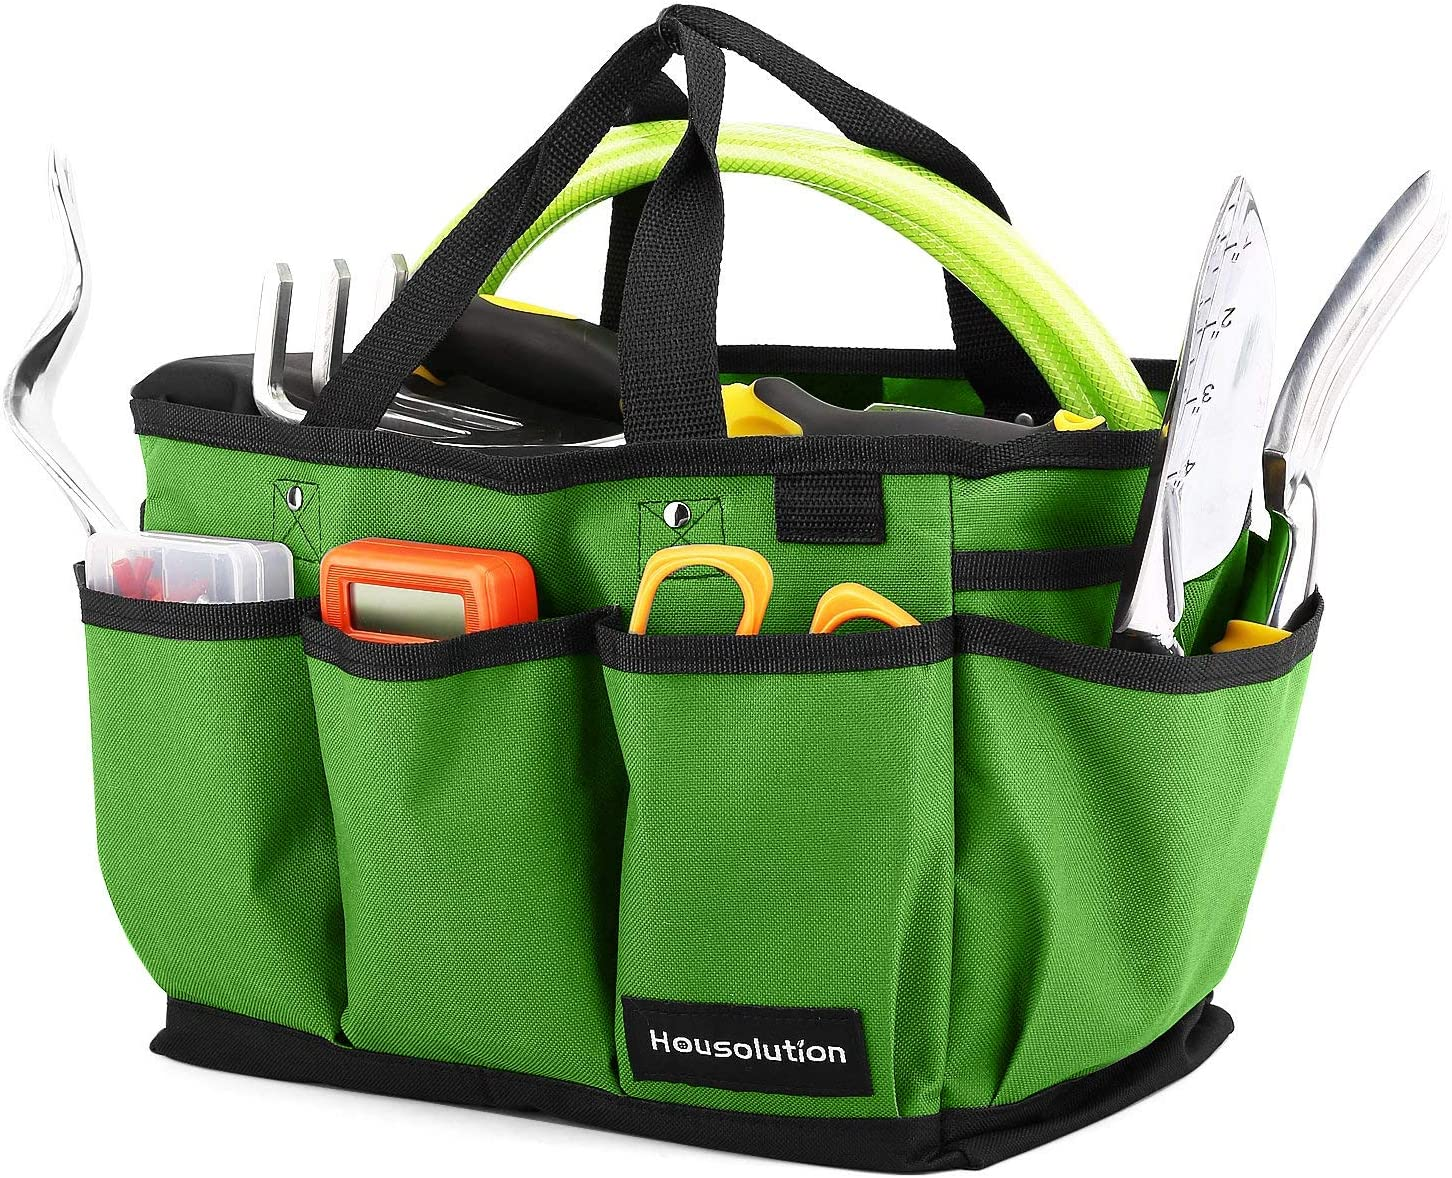 Housolution Gardening Tote Bag, Deluxe Garden Tool Storage Bag and Home Organizer with Pockets, Wear-Resistant & Reusable, 14 Inch, Green